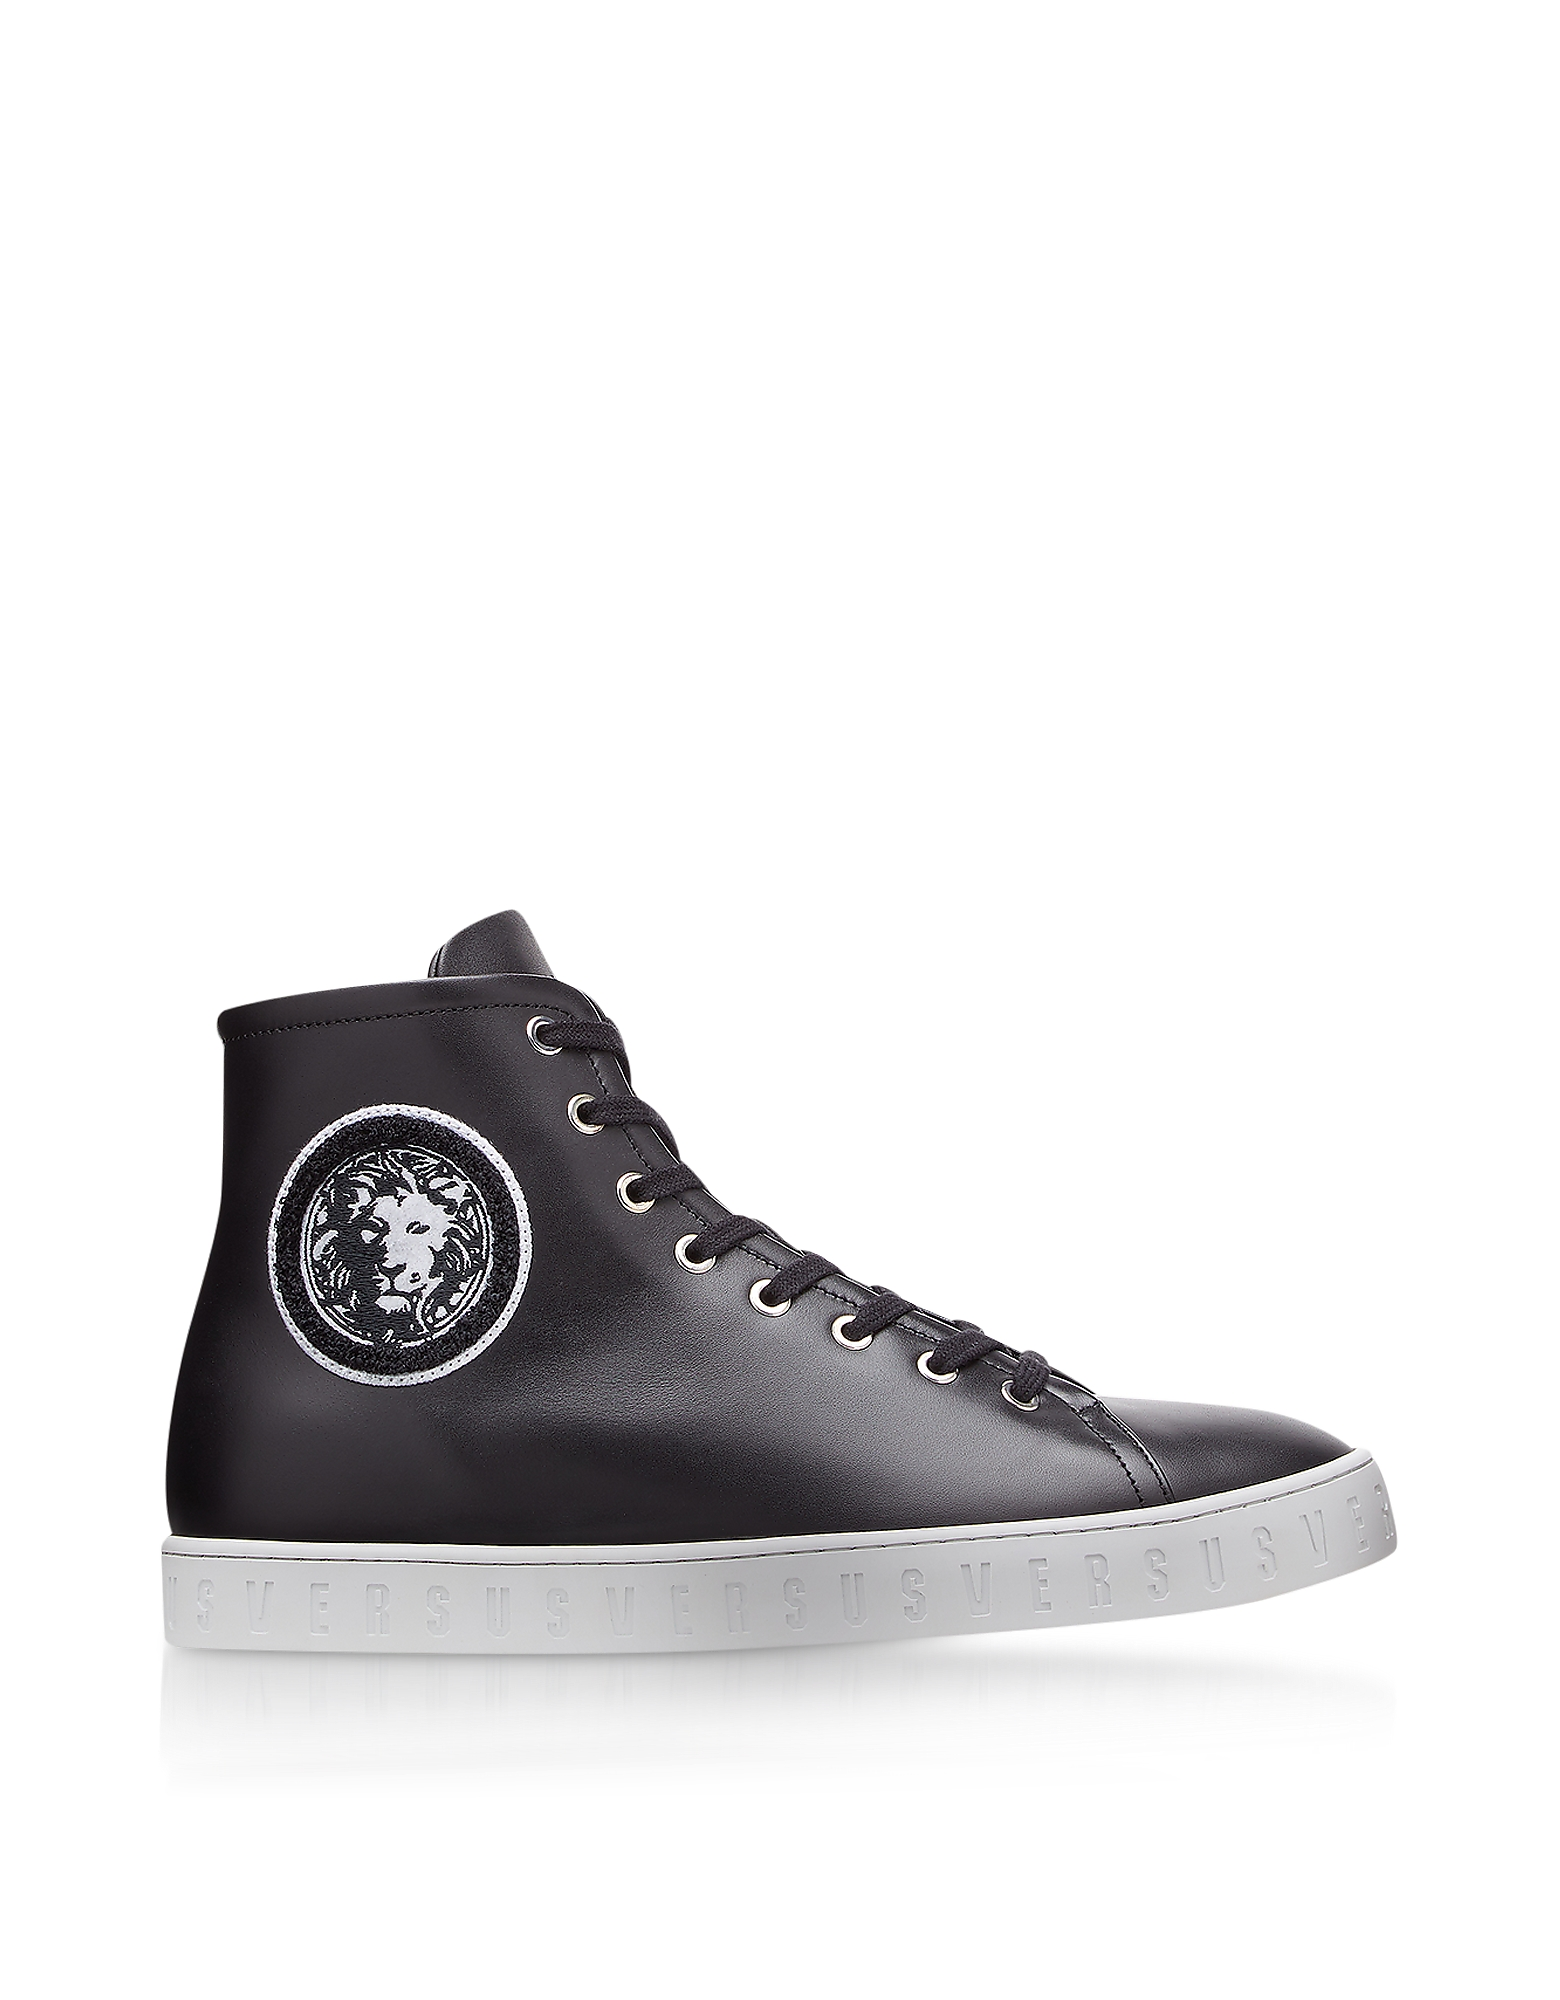 Image of Versace Versus Designer Shoes, Black Leather High Top Men's Sneakers w/Embroidered Lion Head Logo